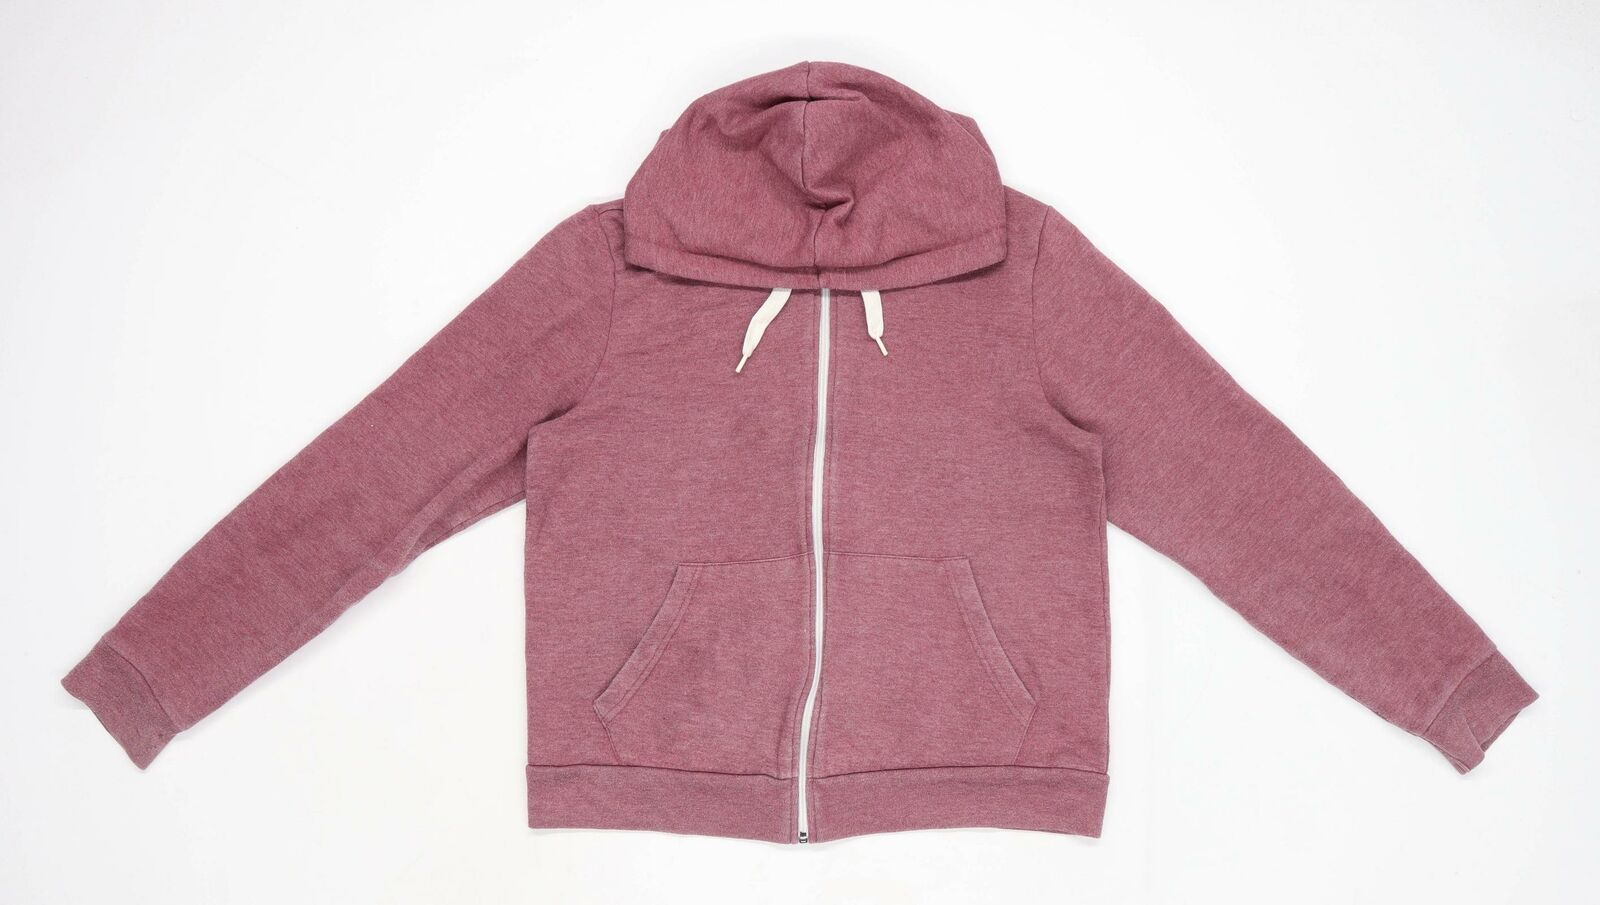 Topshop Womens Brown Jersey Pullover Hoodie Size 12